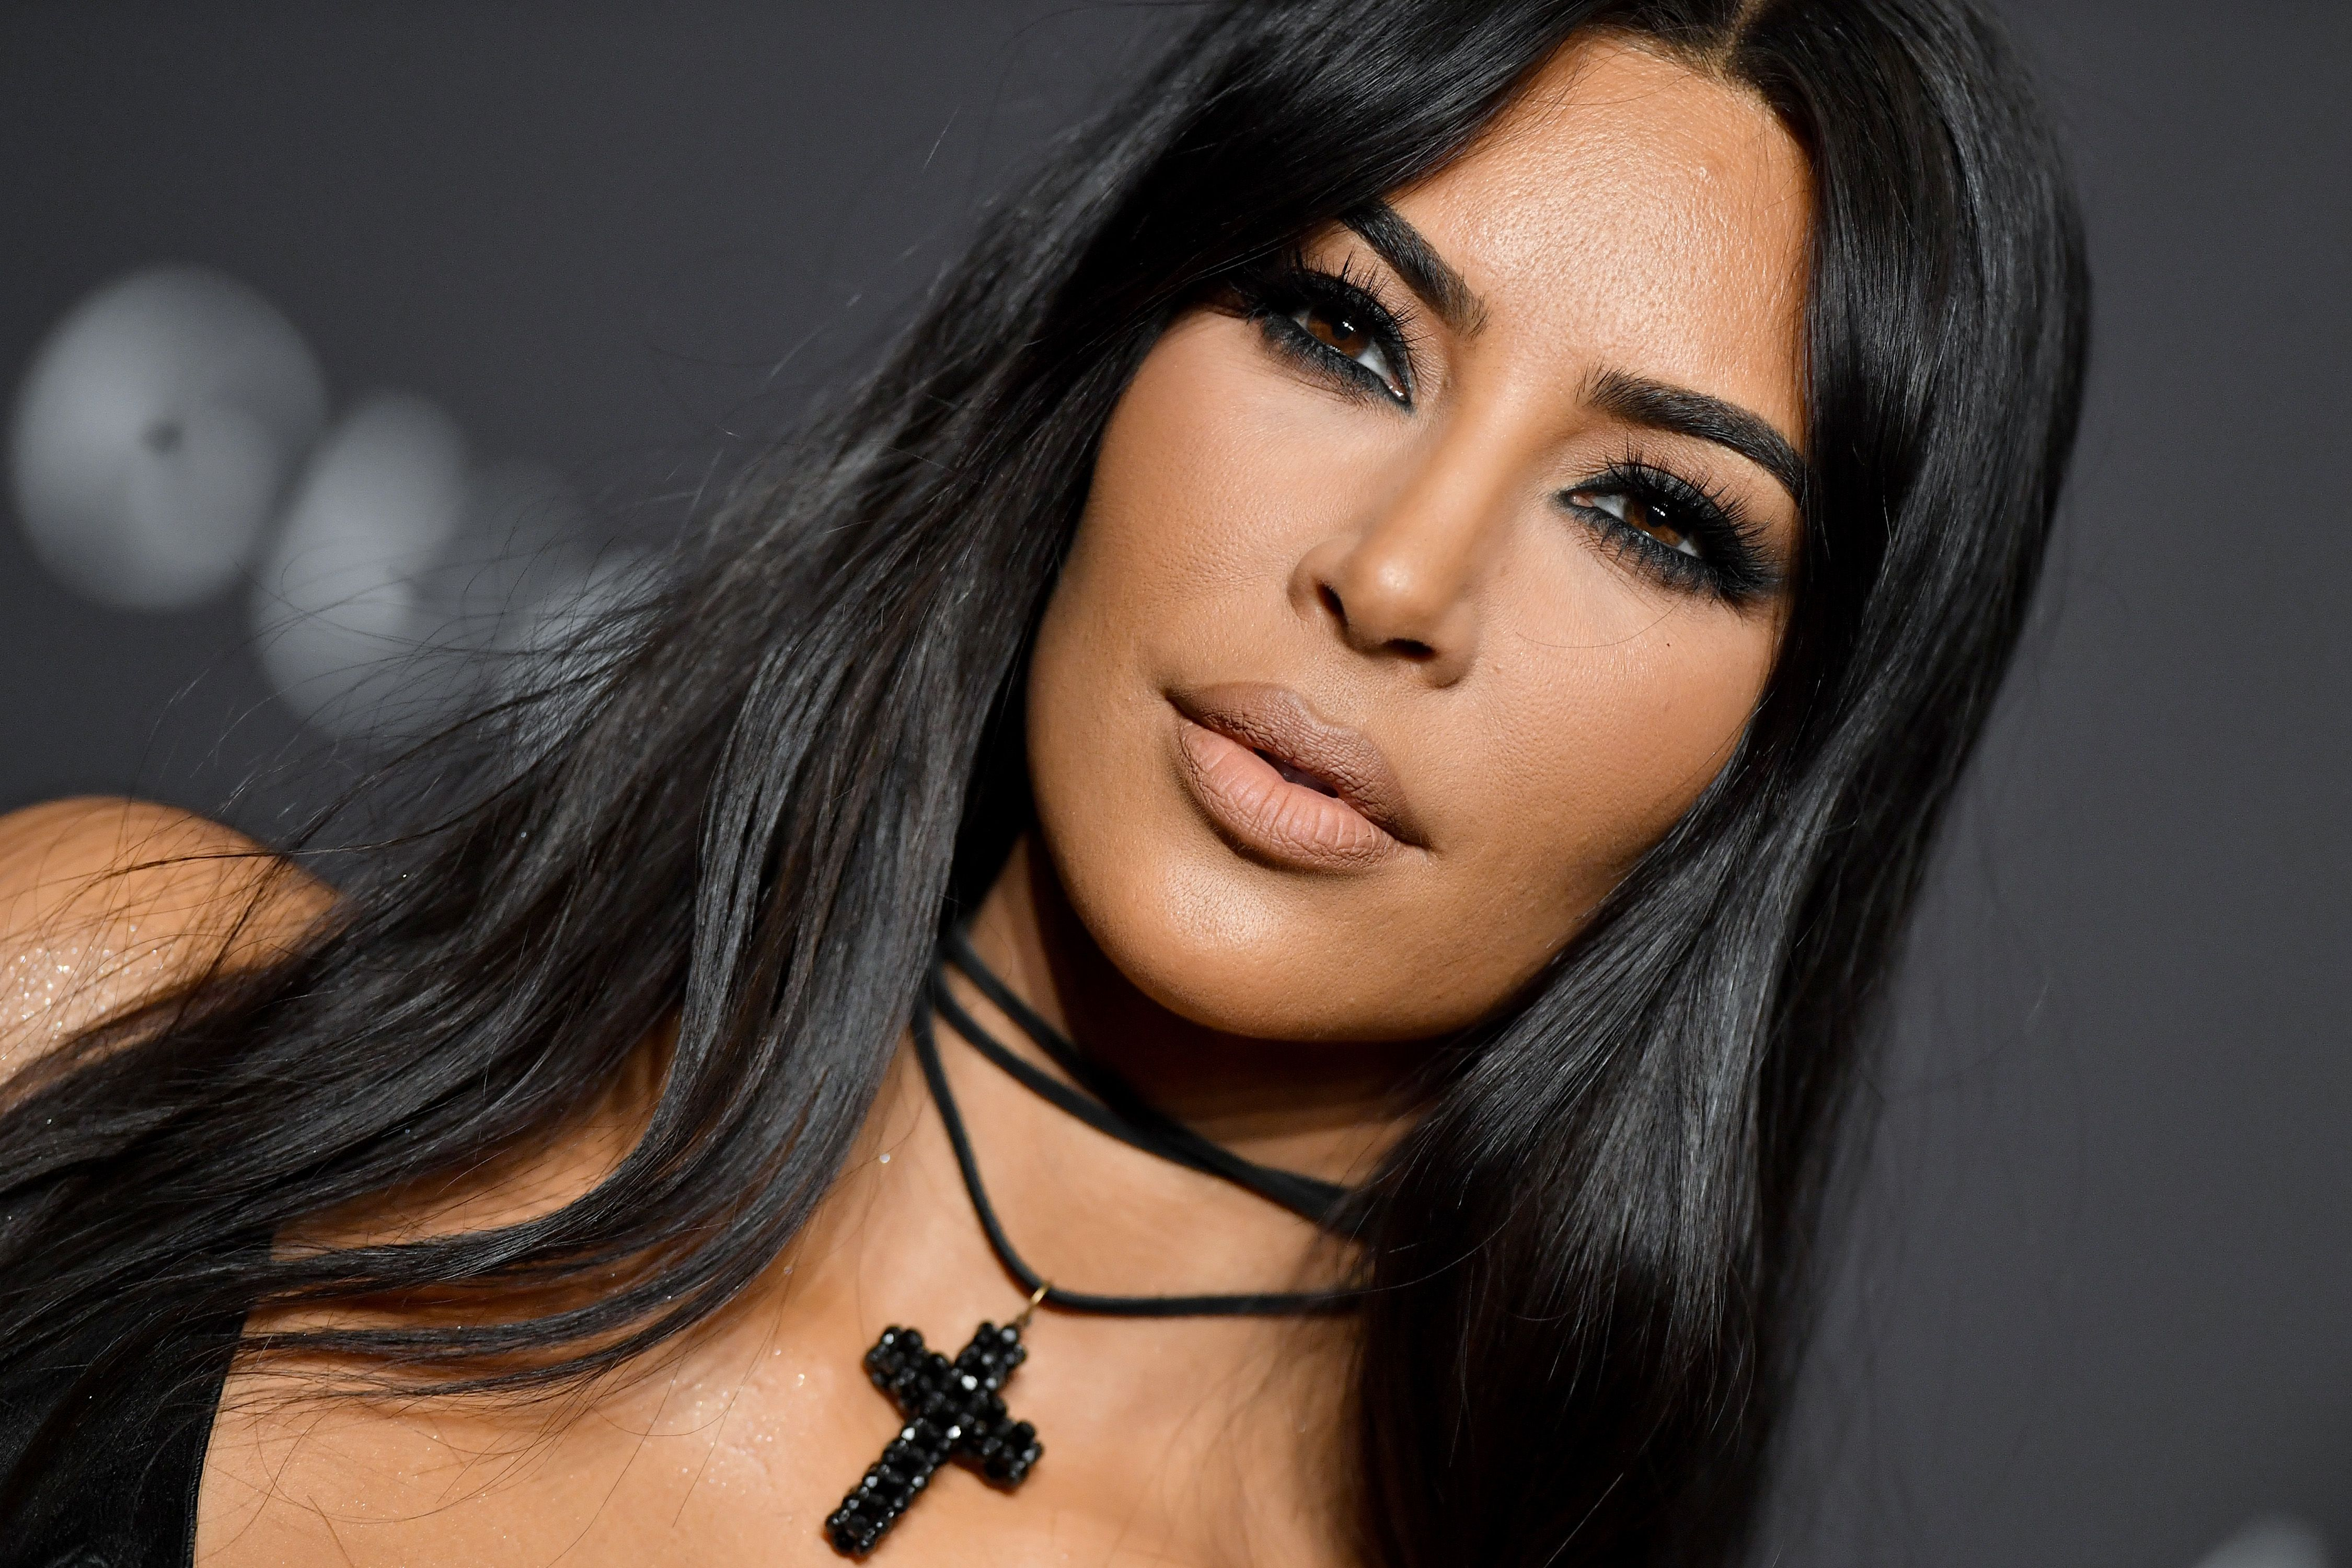 Kim Kardashian Posts Epic '90s Throwback Pics of Herself to Promote Her New Makeup Collection